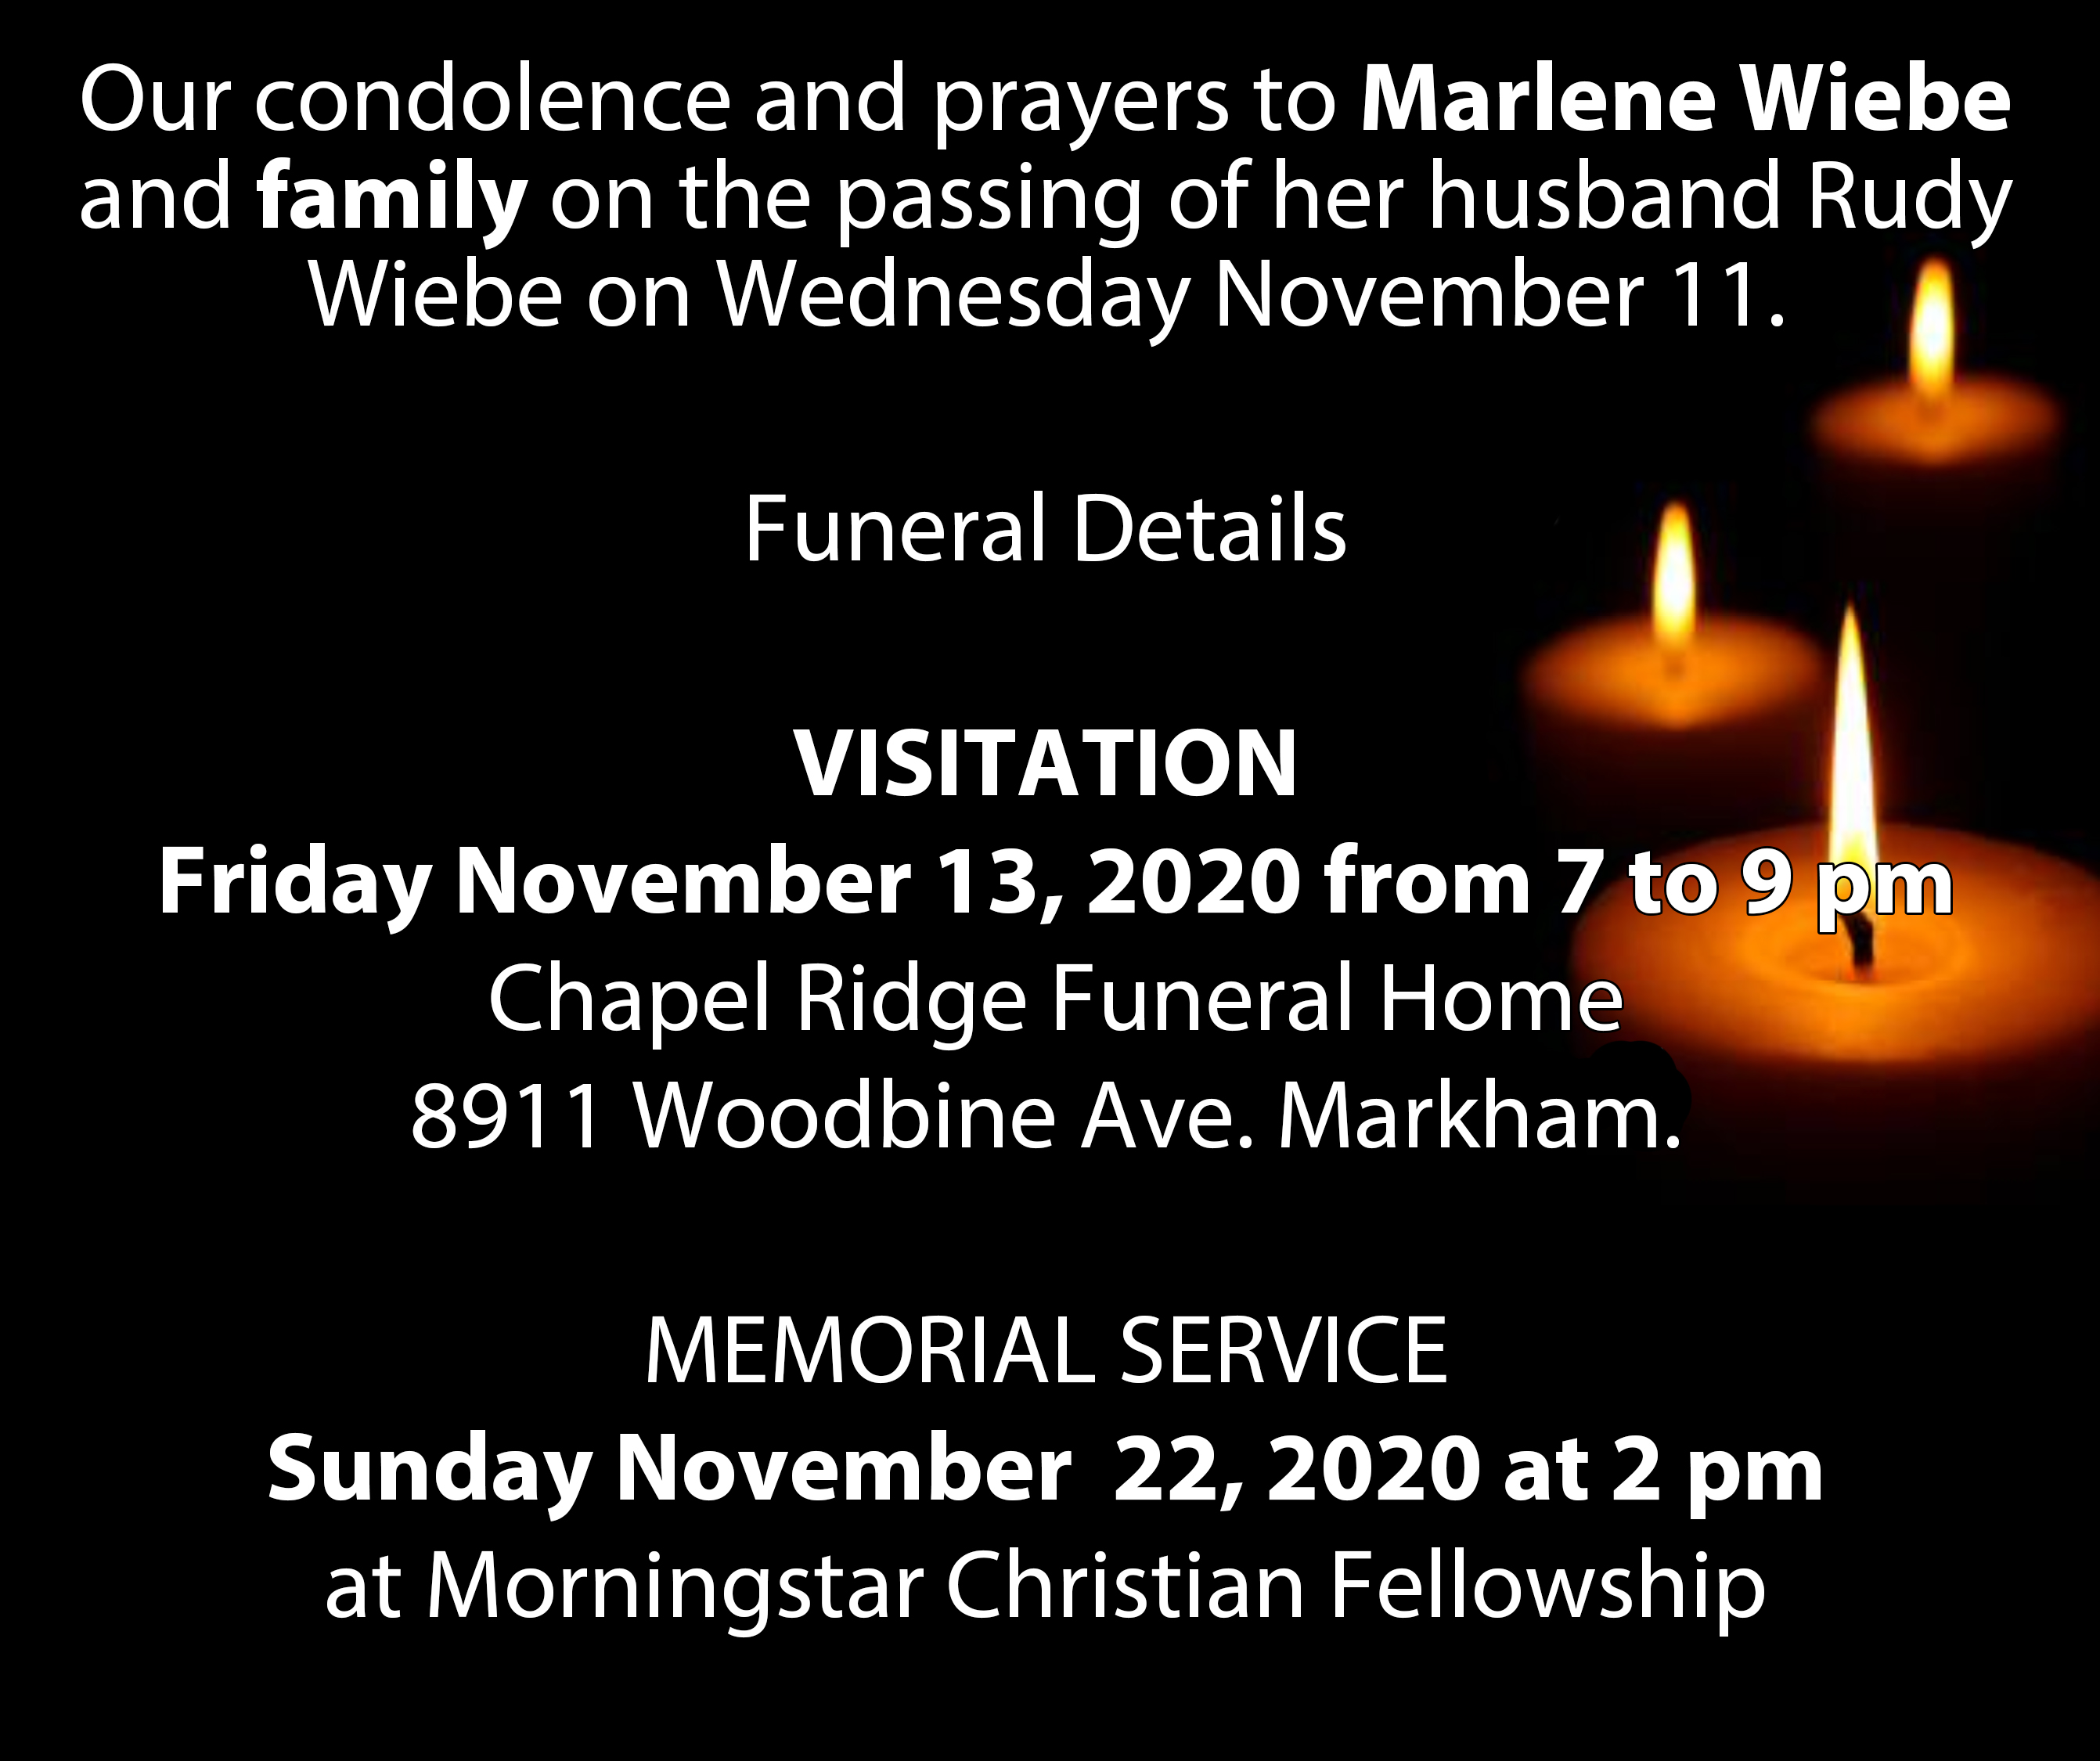 Rudy Wiebe Funeral Details